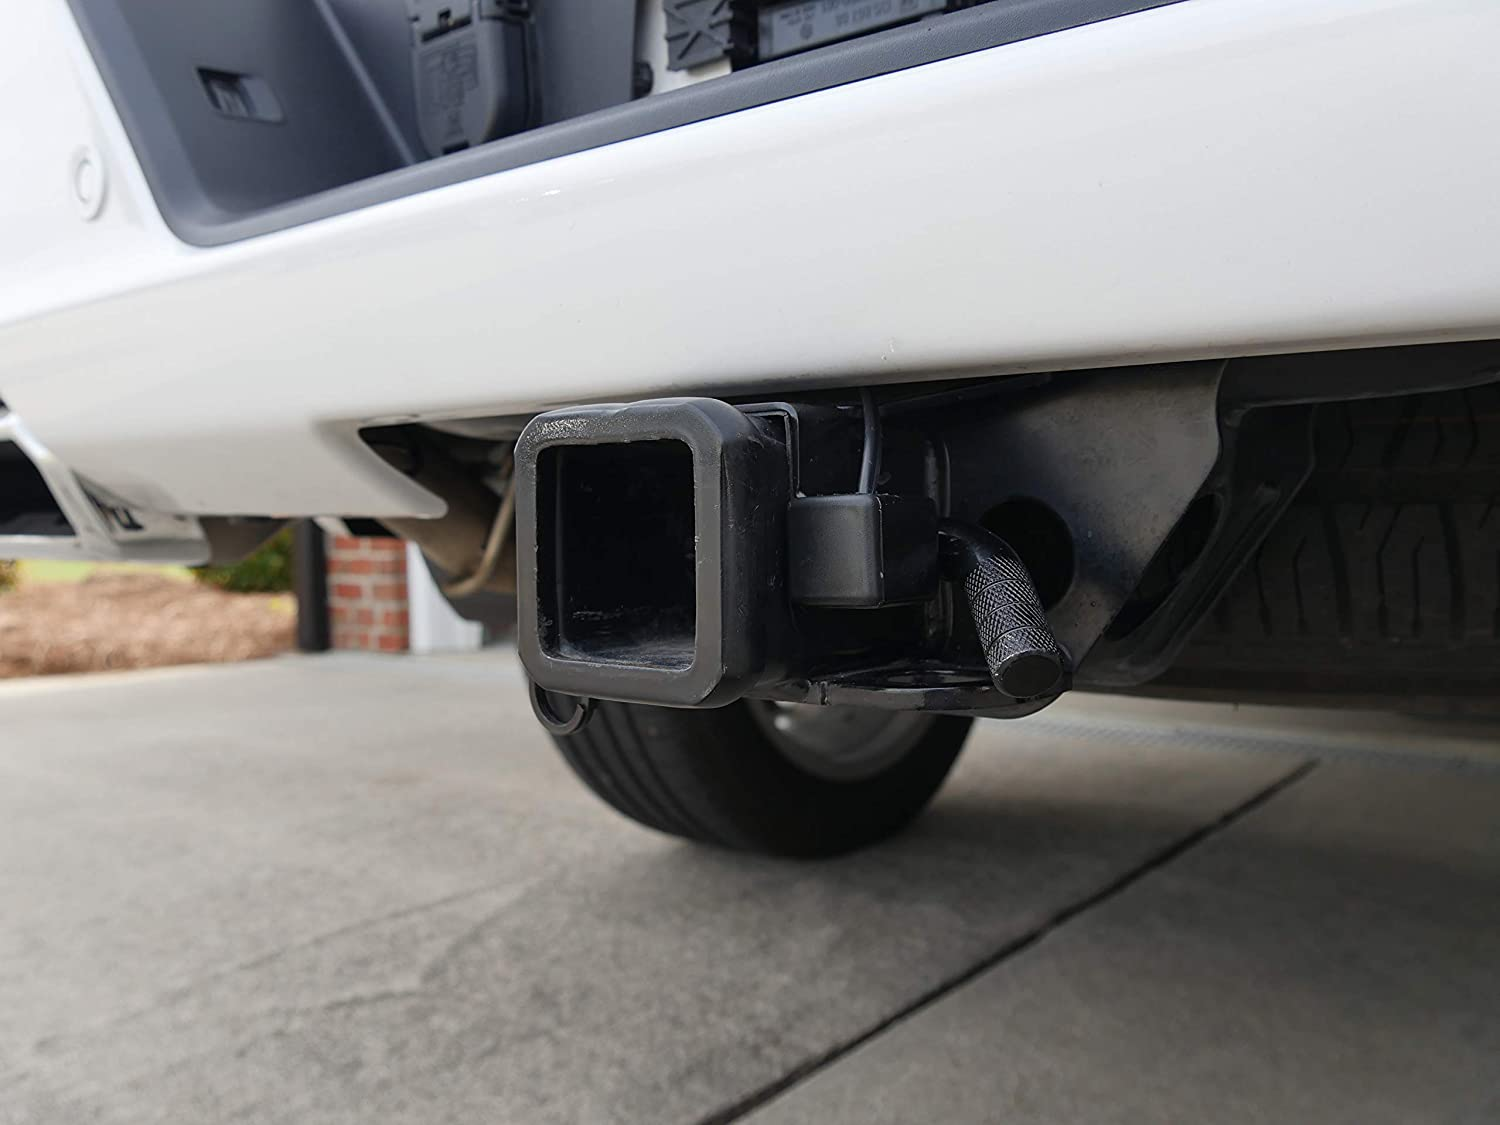 2020 GMC Sierra Trucks with Multipro Tailgate Safely Prevents Damage of Tailgate Hitting Hitch GMC 1500 Auto Engage Splitgate Override Switch Tailgate Fix for 2019